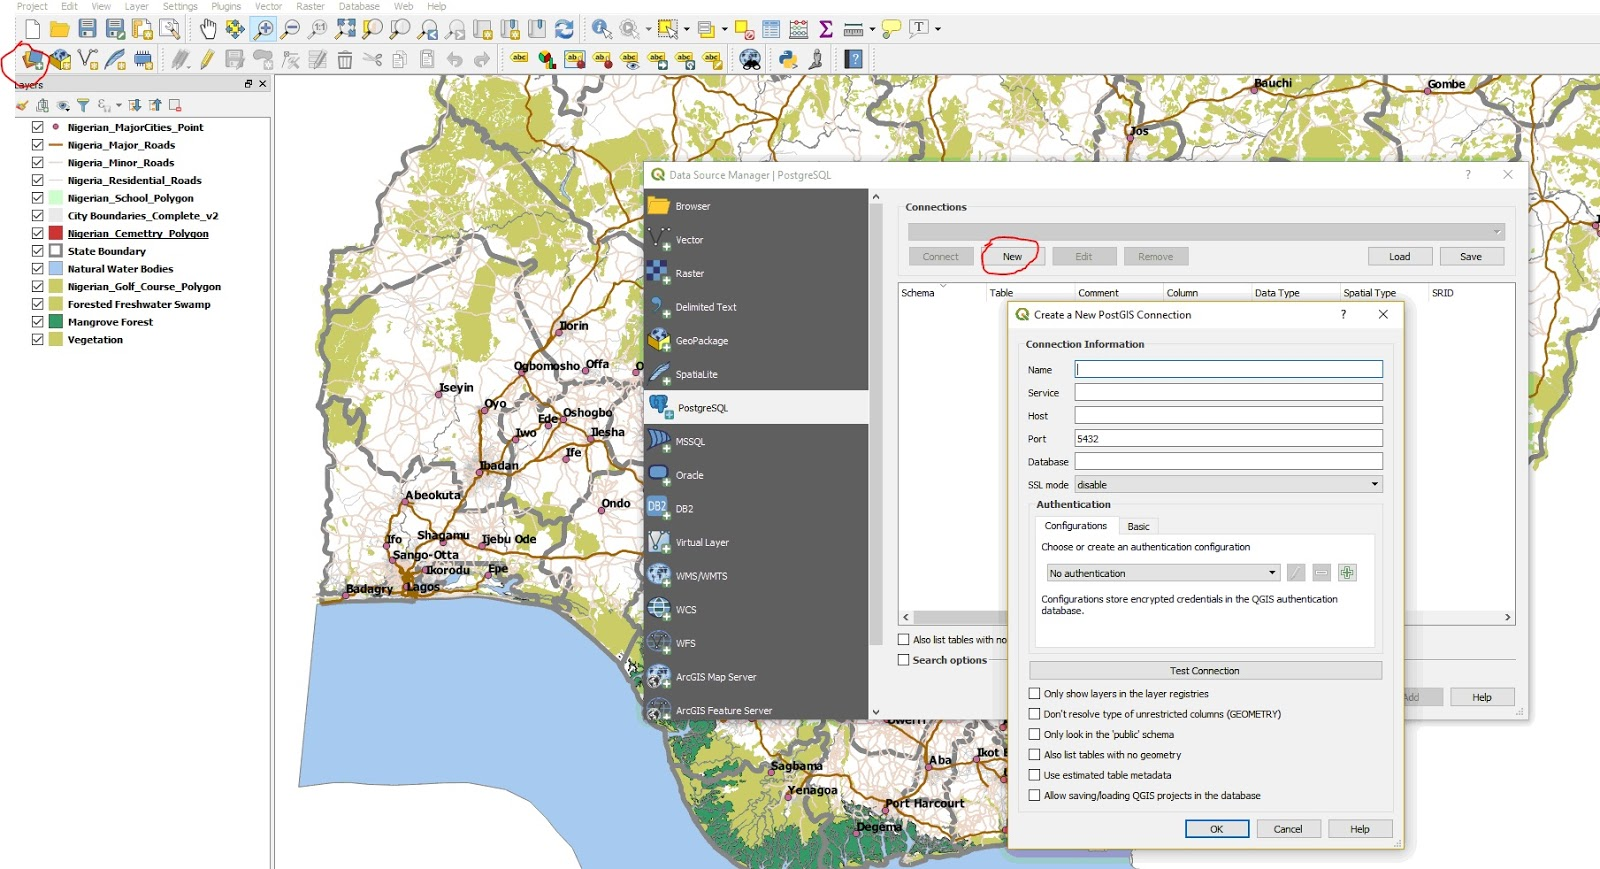 PostgreSQL and QGIS -A Marriage of Convenience for Nigerian GIS